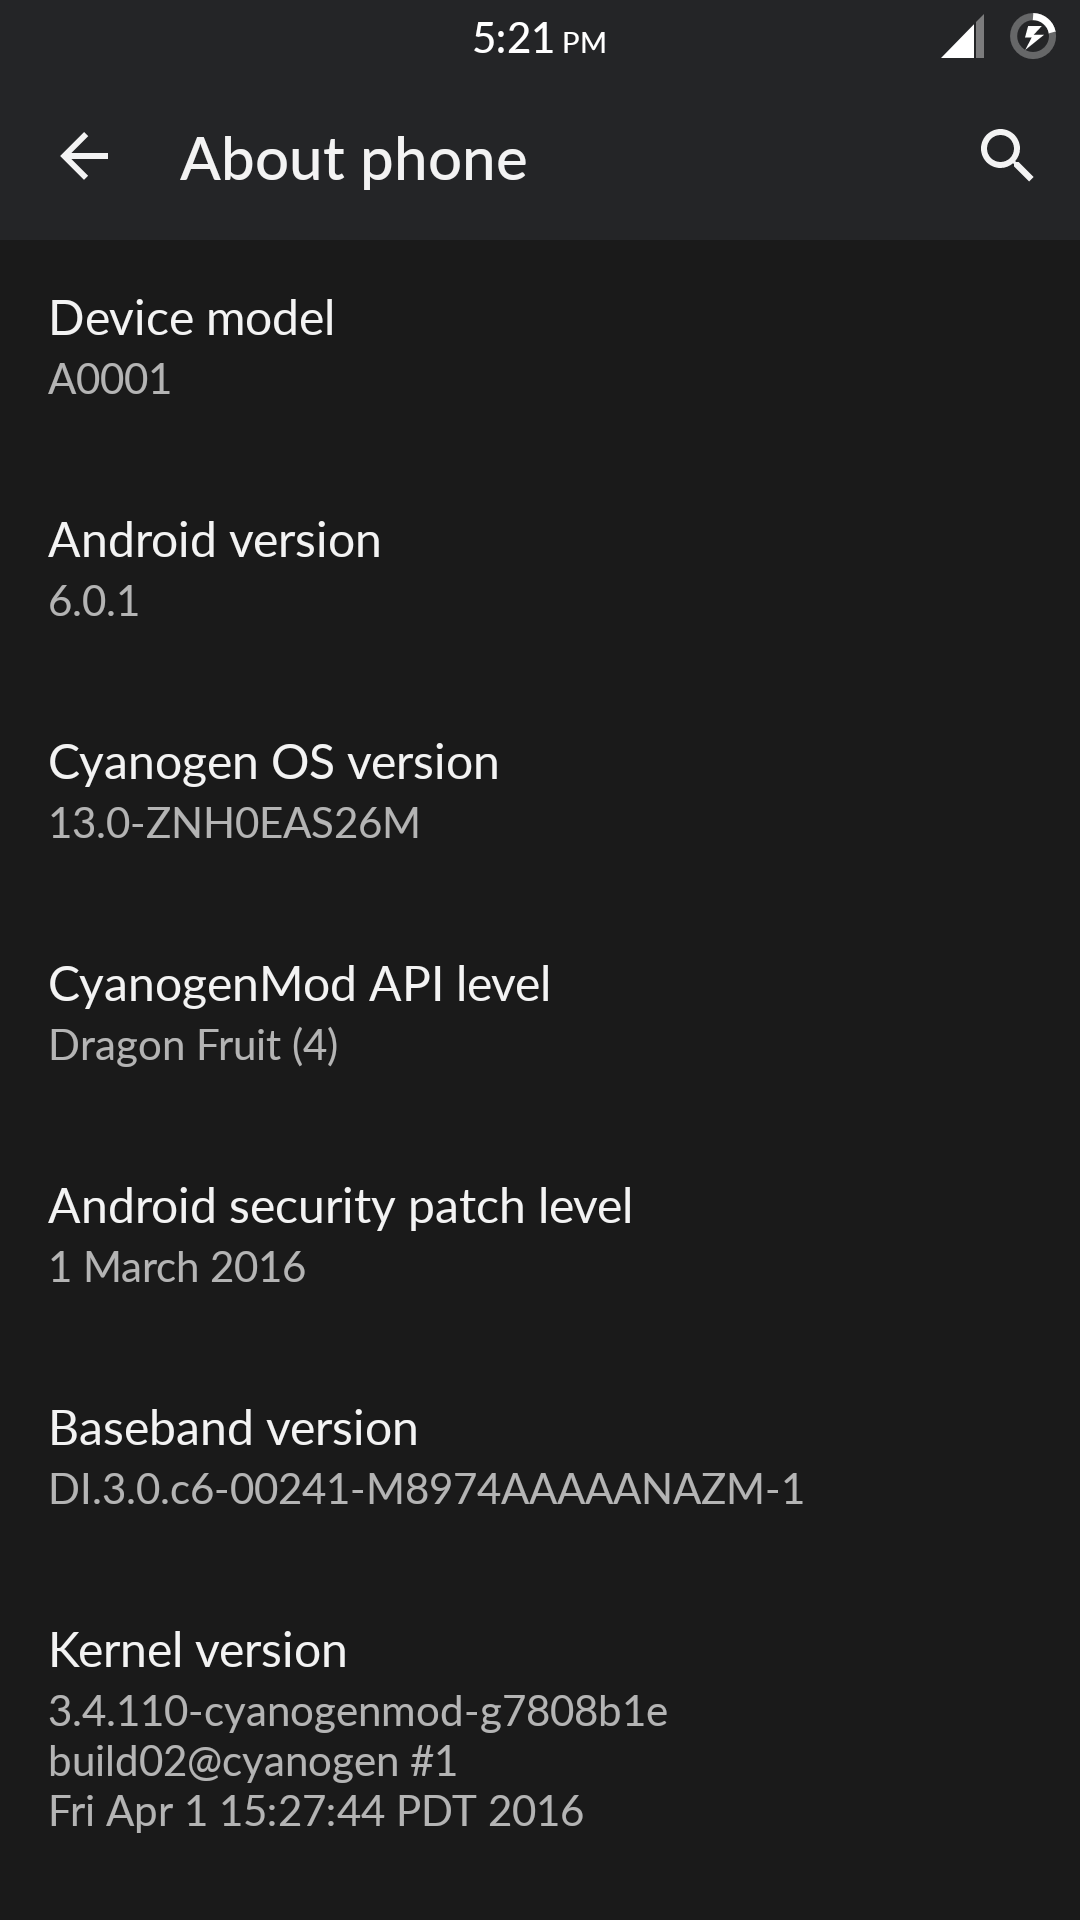 ROM][Full ZIP] Cyanogen OS 13 ZNH0EAS26M - Untouched -MM- Flashable